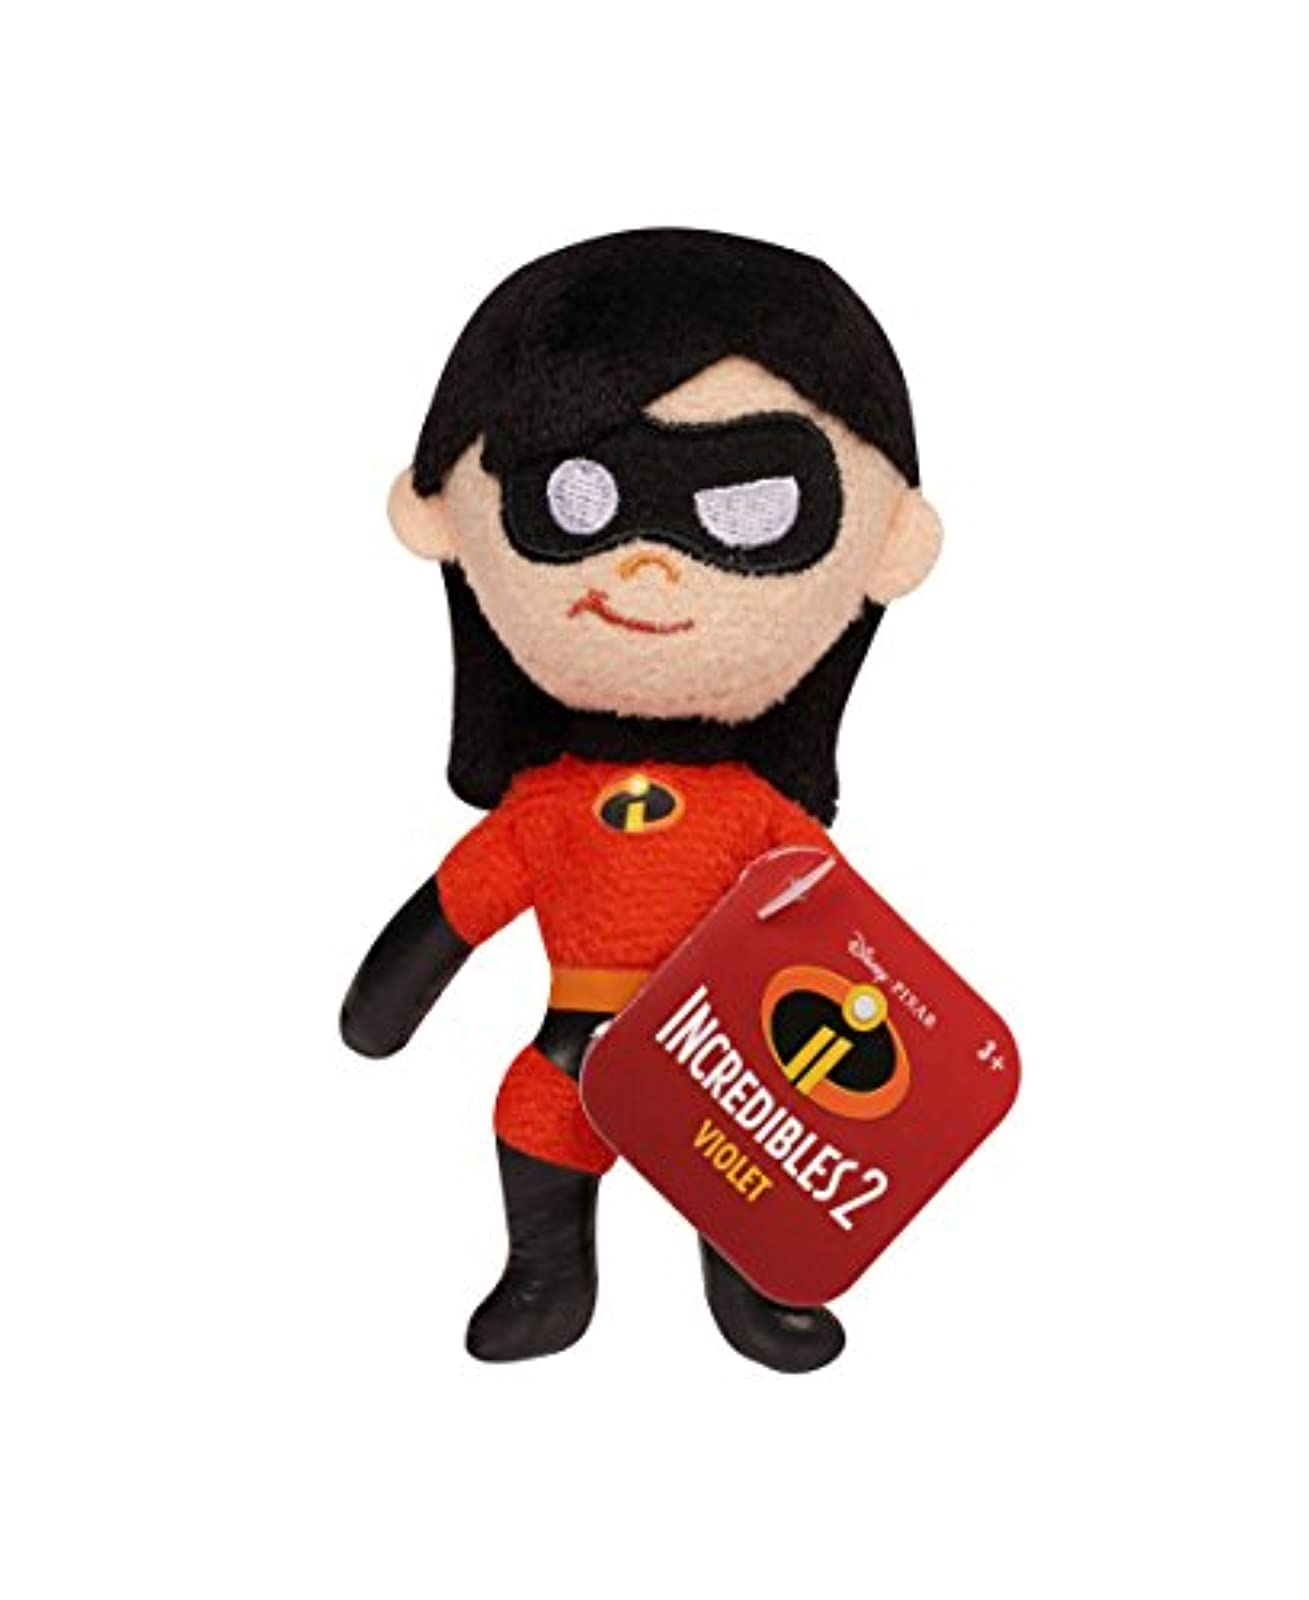 The Incredibles Violet Red Toy Plush